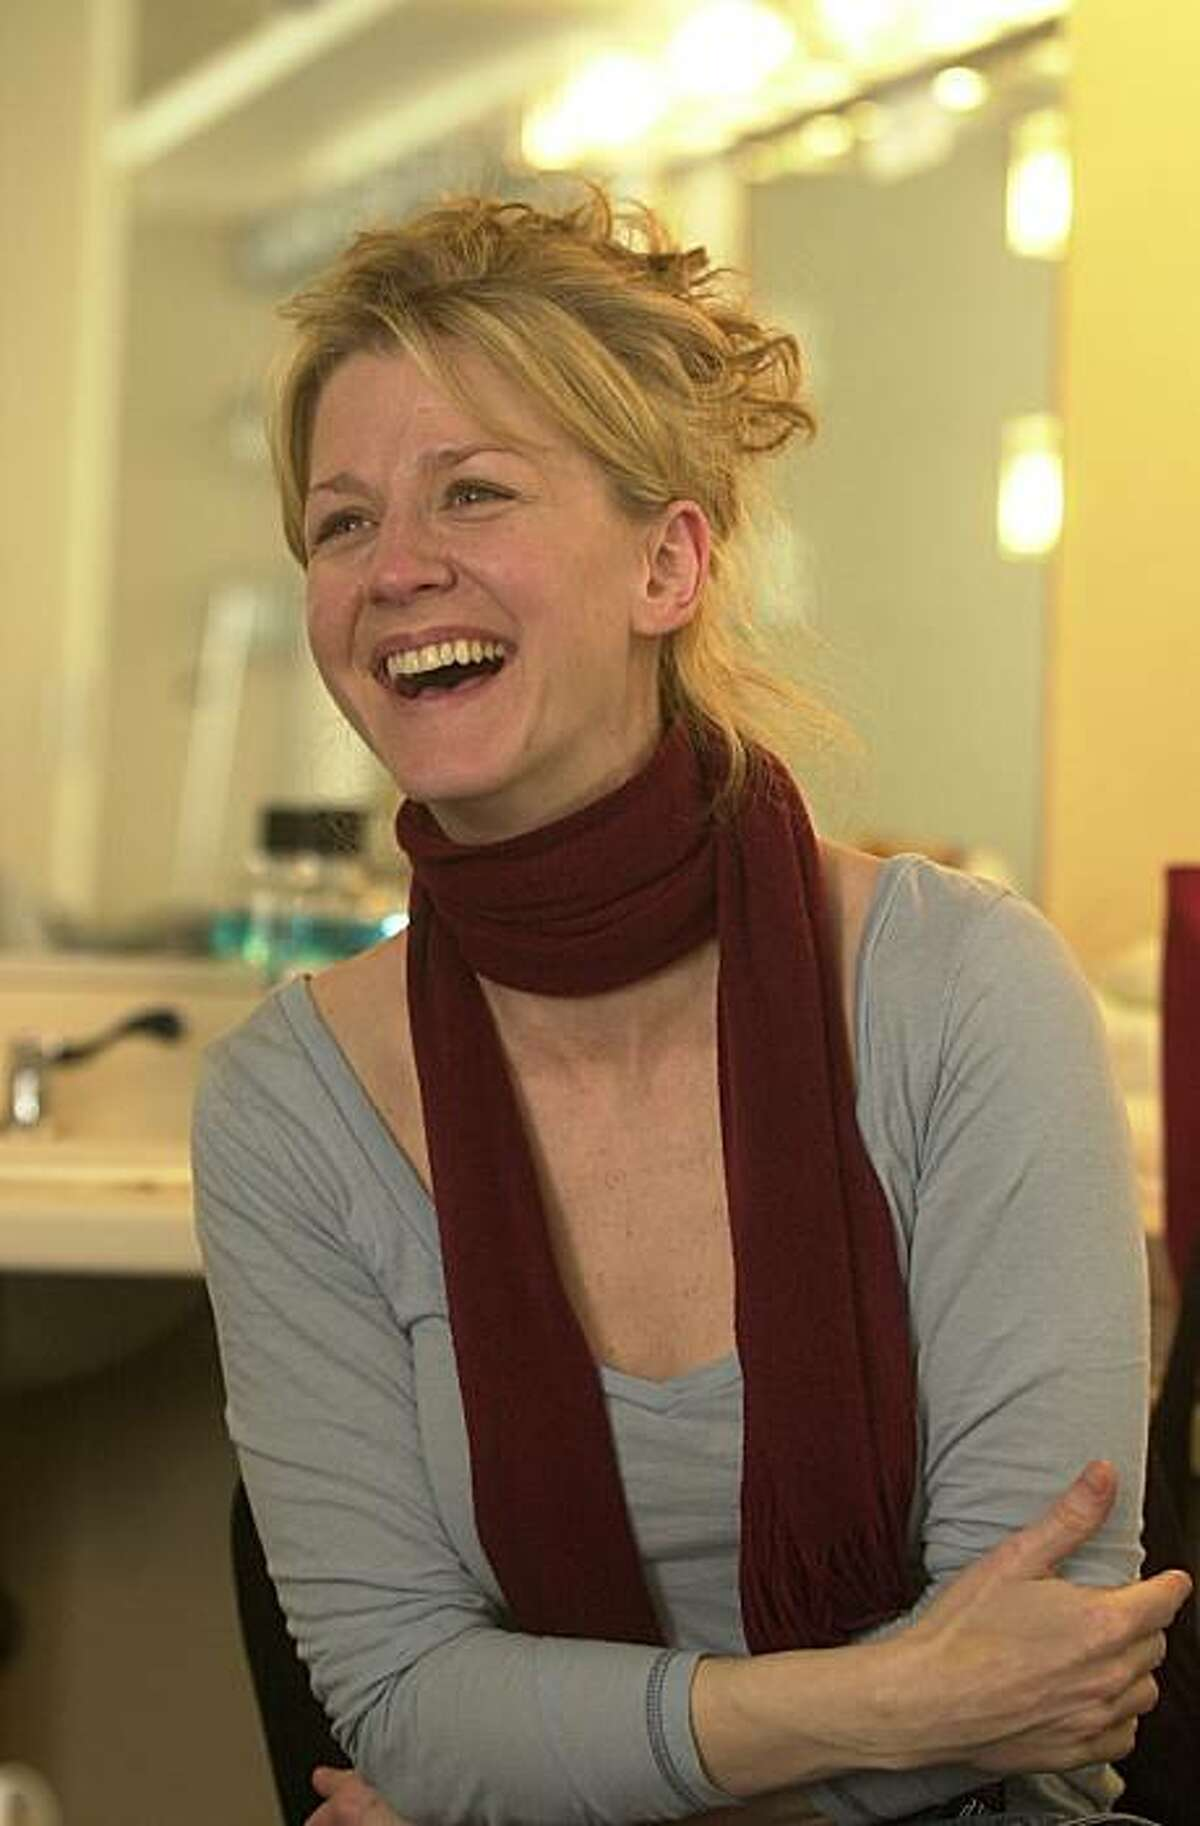 Rene Augensen, leading lady at ACT talks about her role in the Ibsen's protofeminist classic